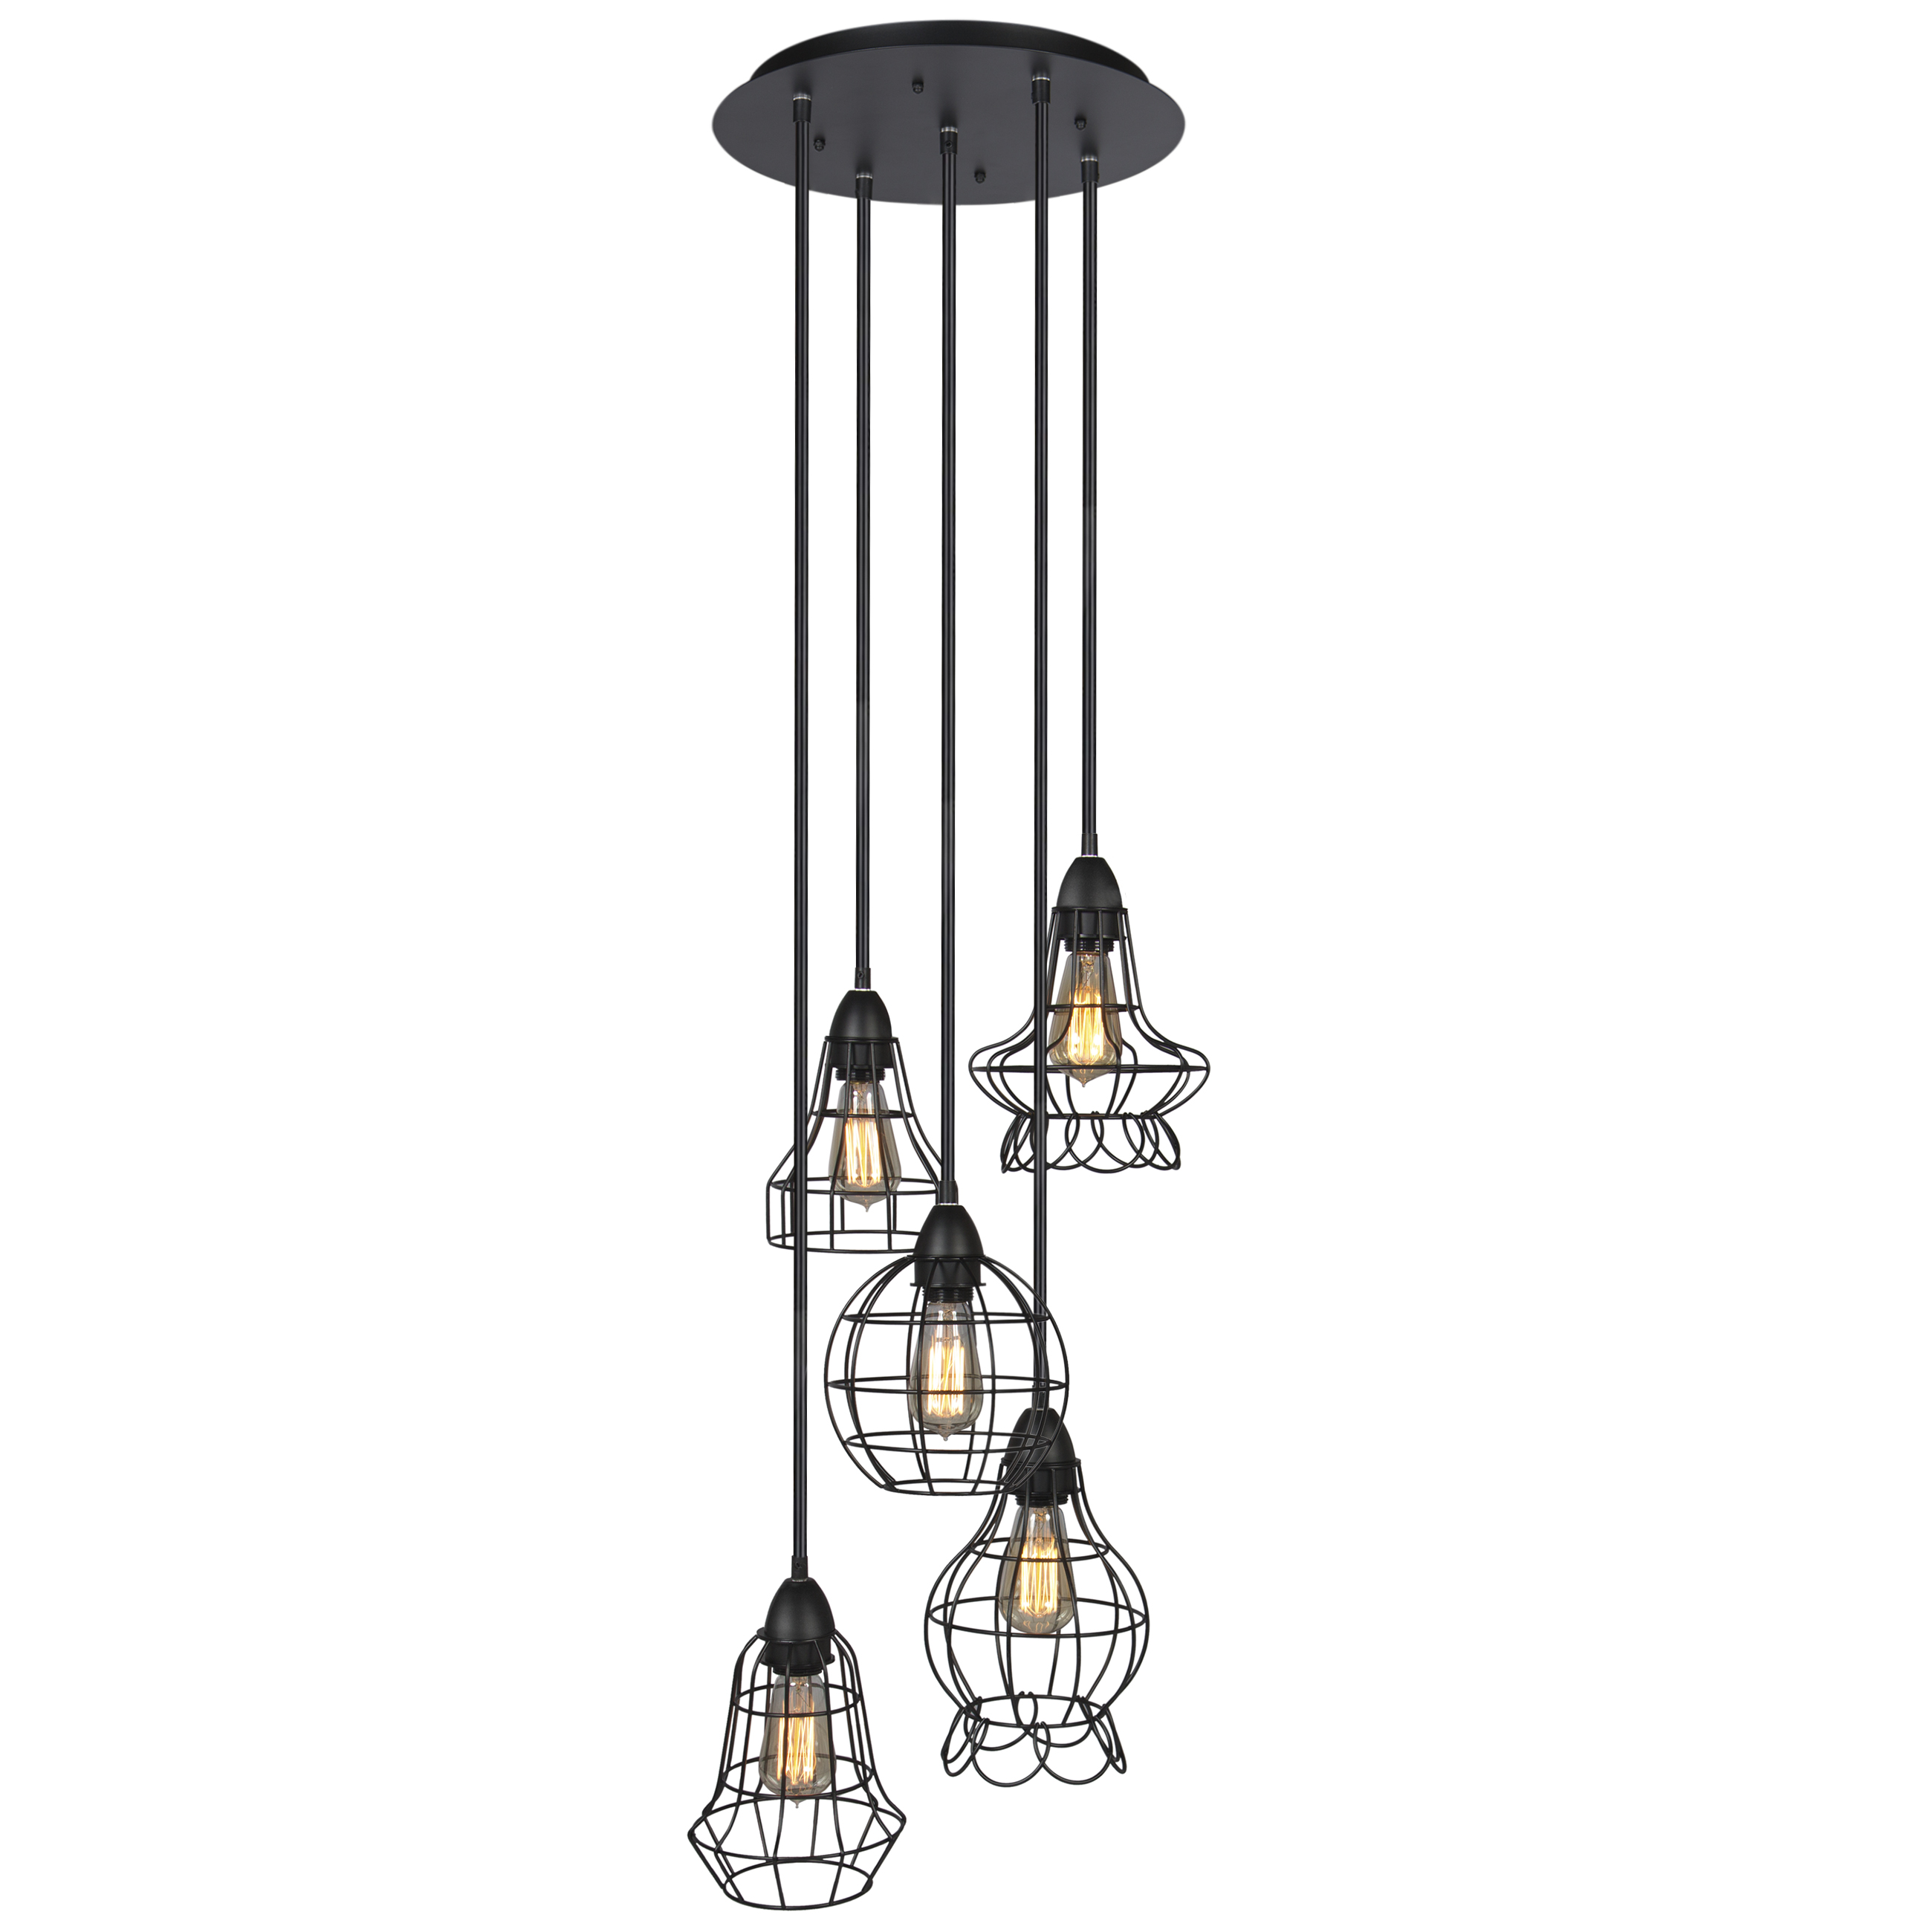 Best Choice Products 5 Light Steel Hanging Pendant Cage Lighting Fixture W Adjule Cord Lengths Black